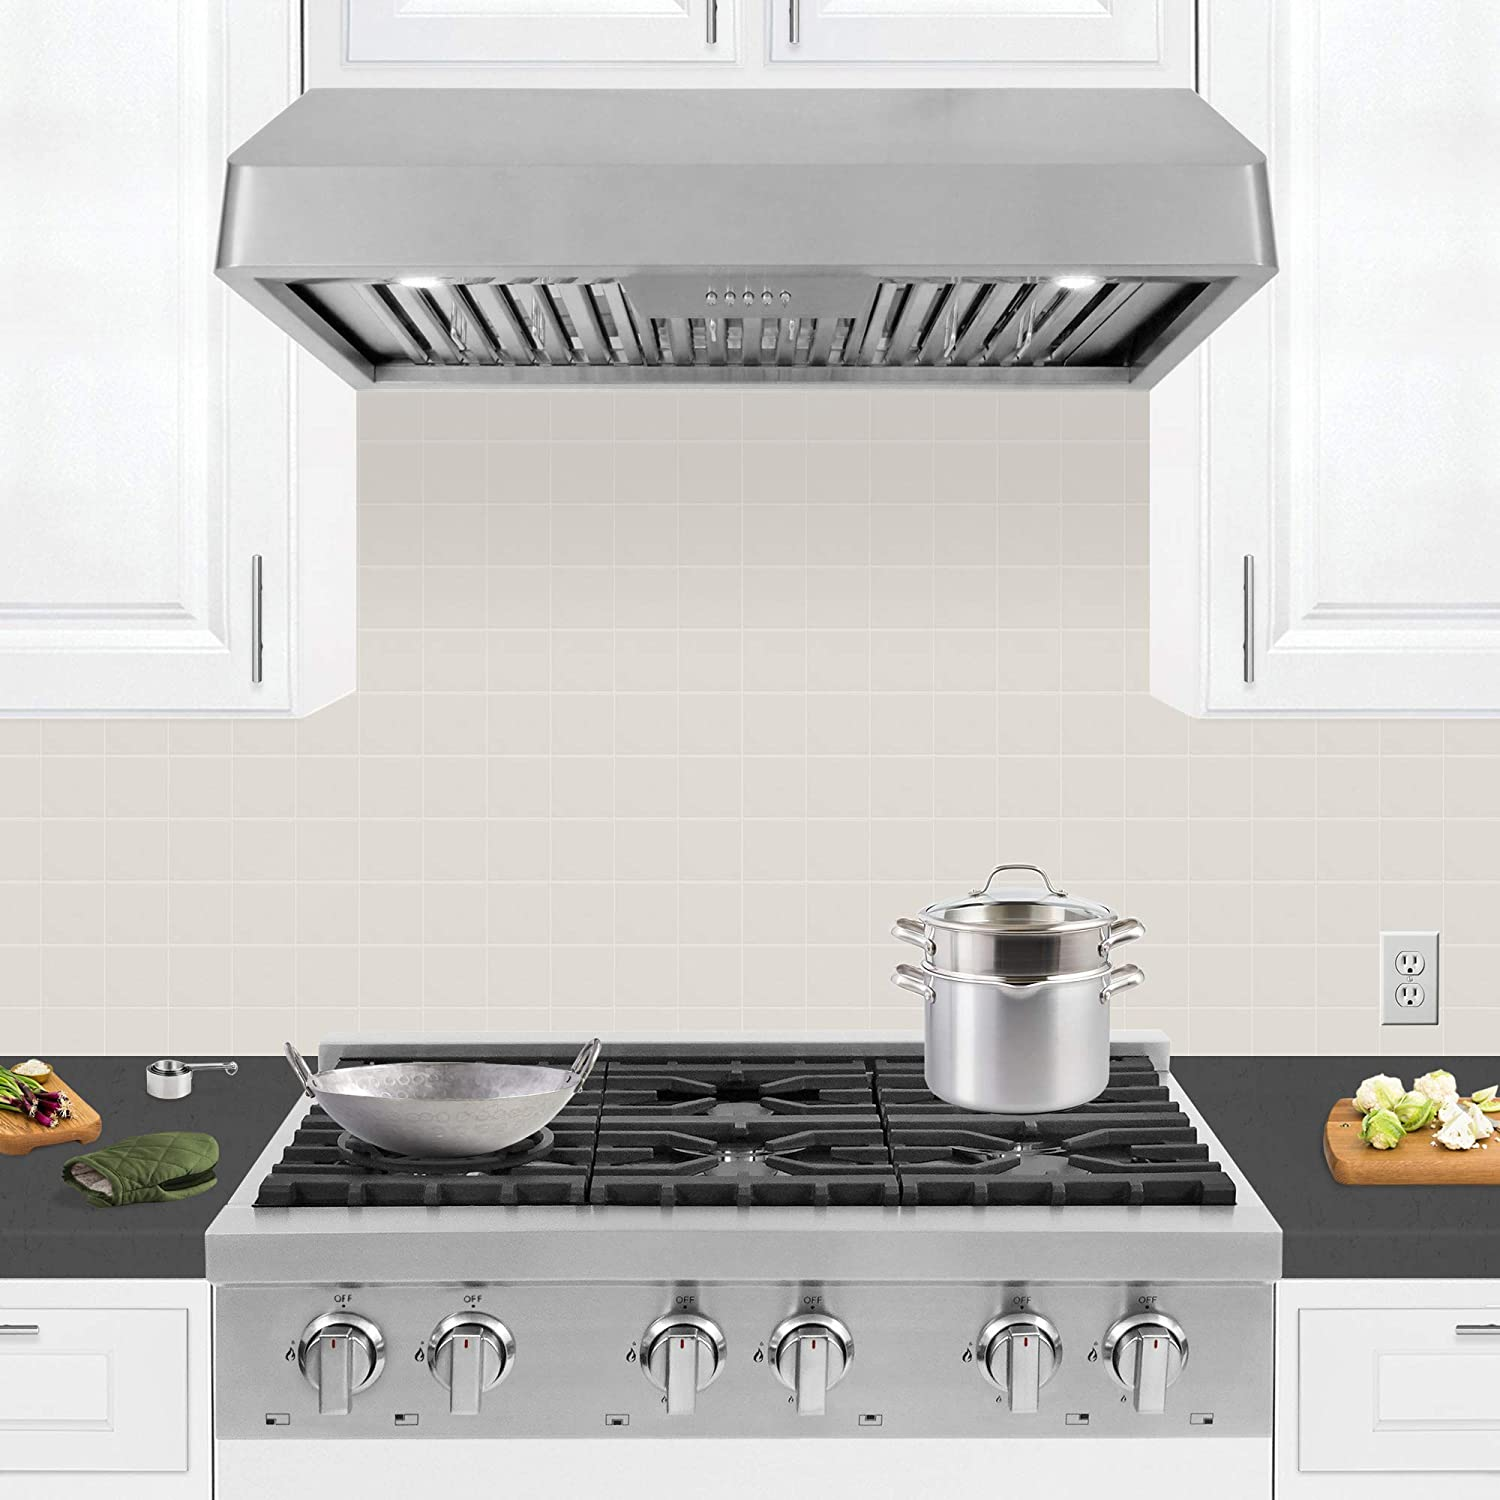 Cosmo QB90 36-in Under-Cabinet Range Hood 900-CFM Ductless Convertible Duct, Kitchen Stove Vent with LED Light, 3 Speed Exhaust Fan, Dishwasher-Safe Permanent Filter Stainless-Steel